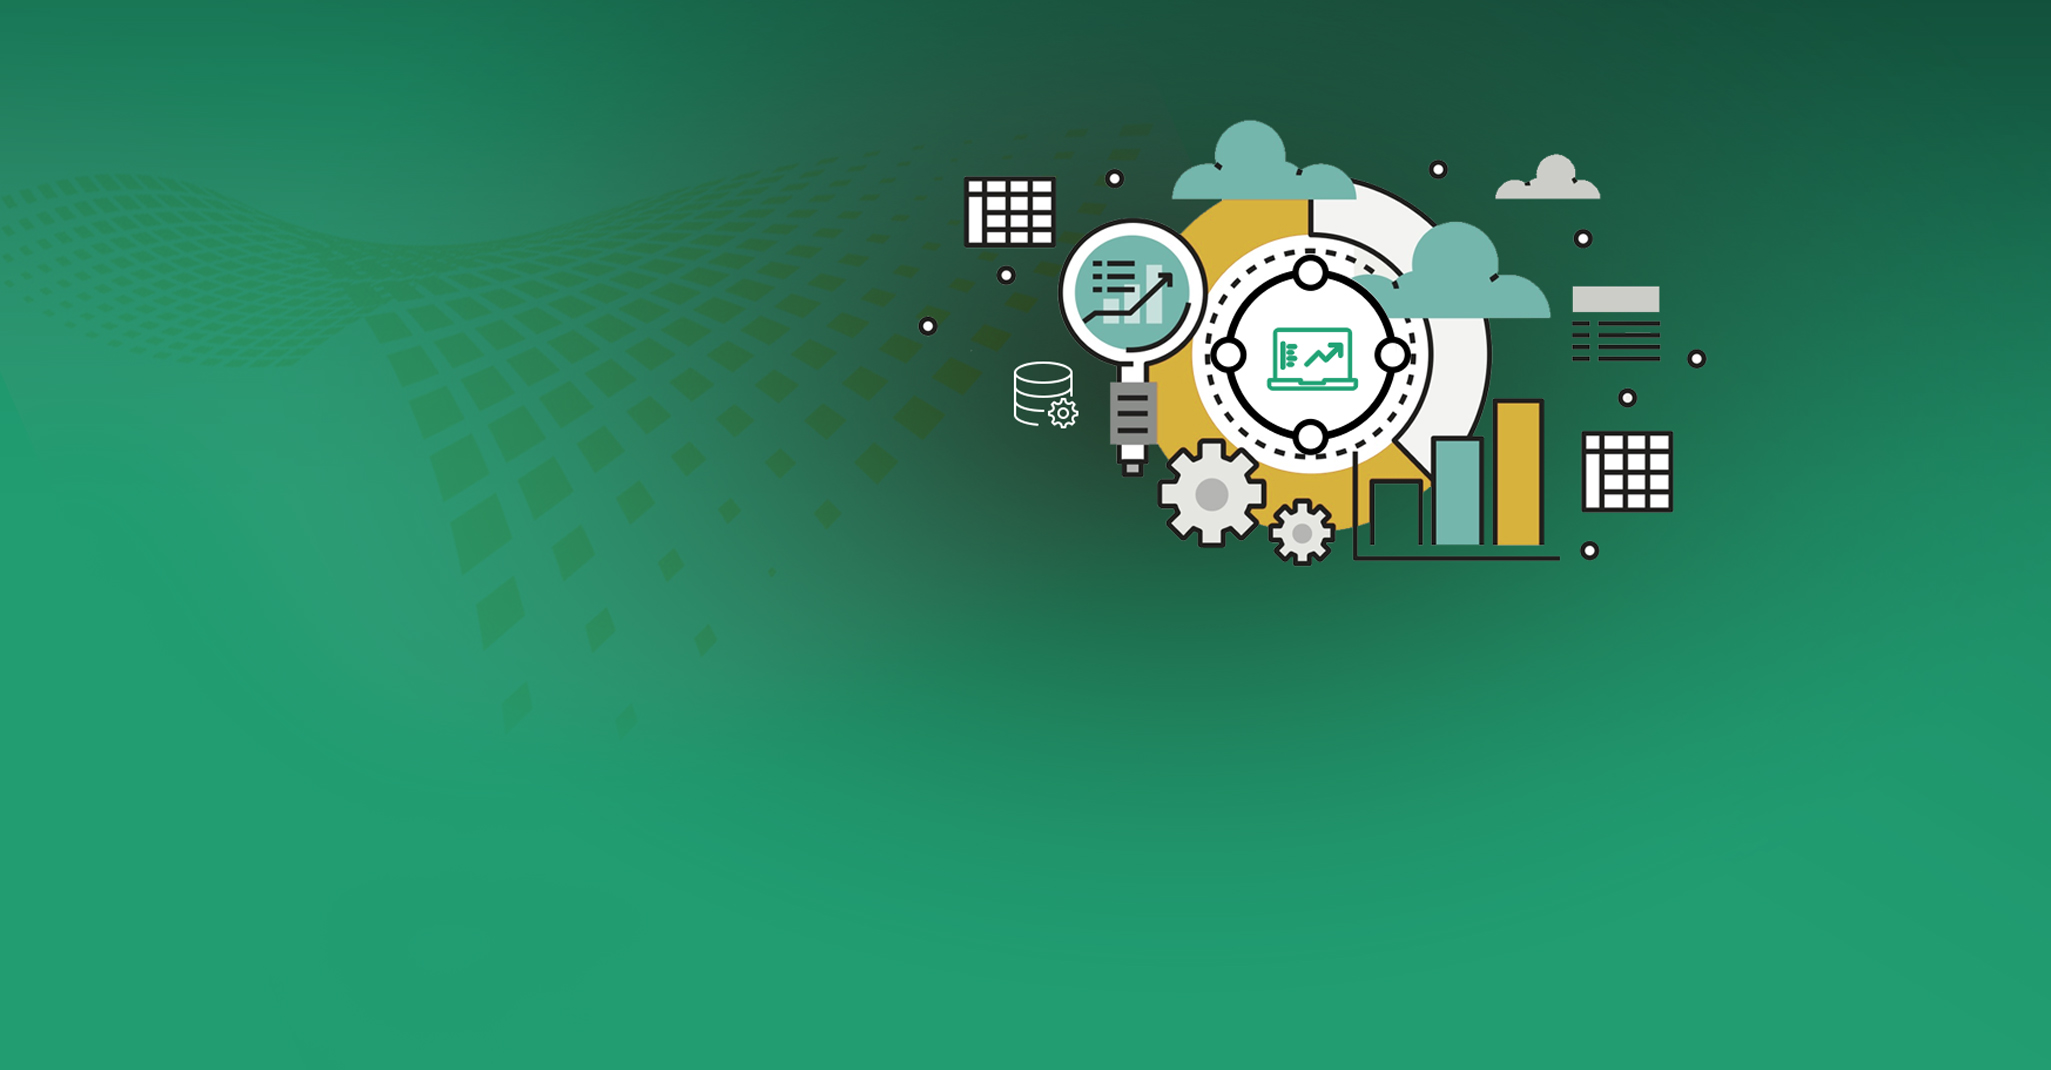 green background with a gears, charts, clouds and database icons displayed